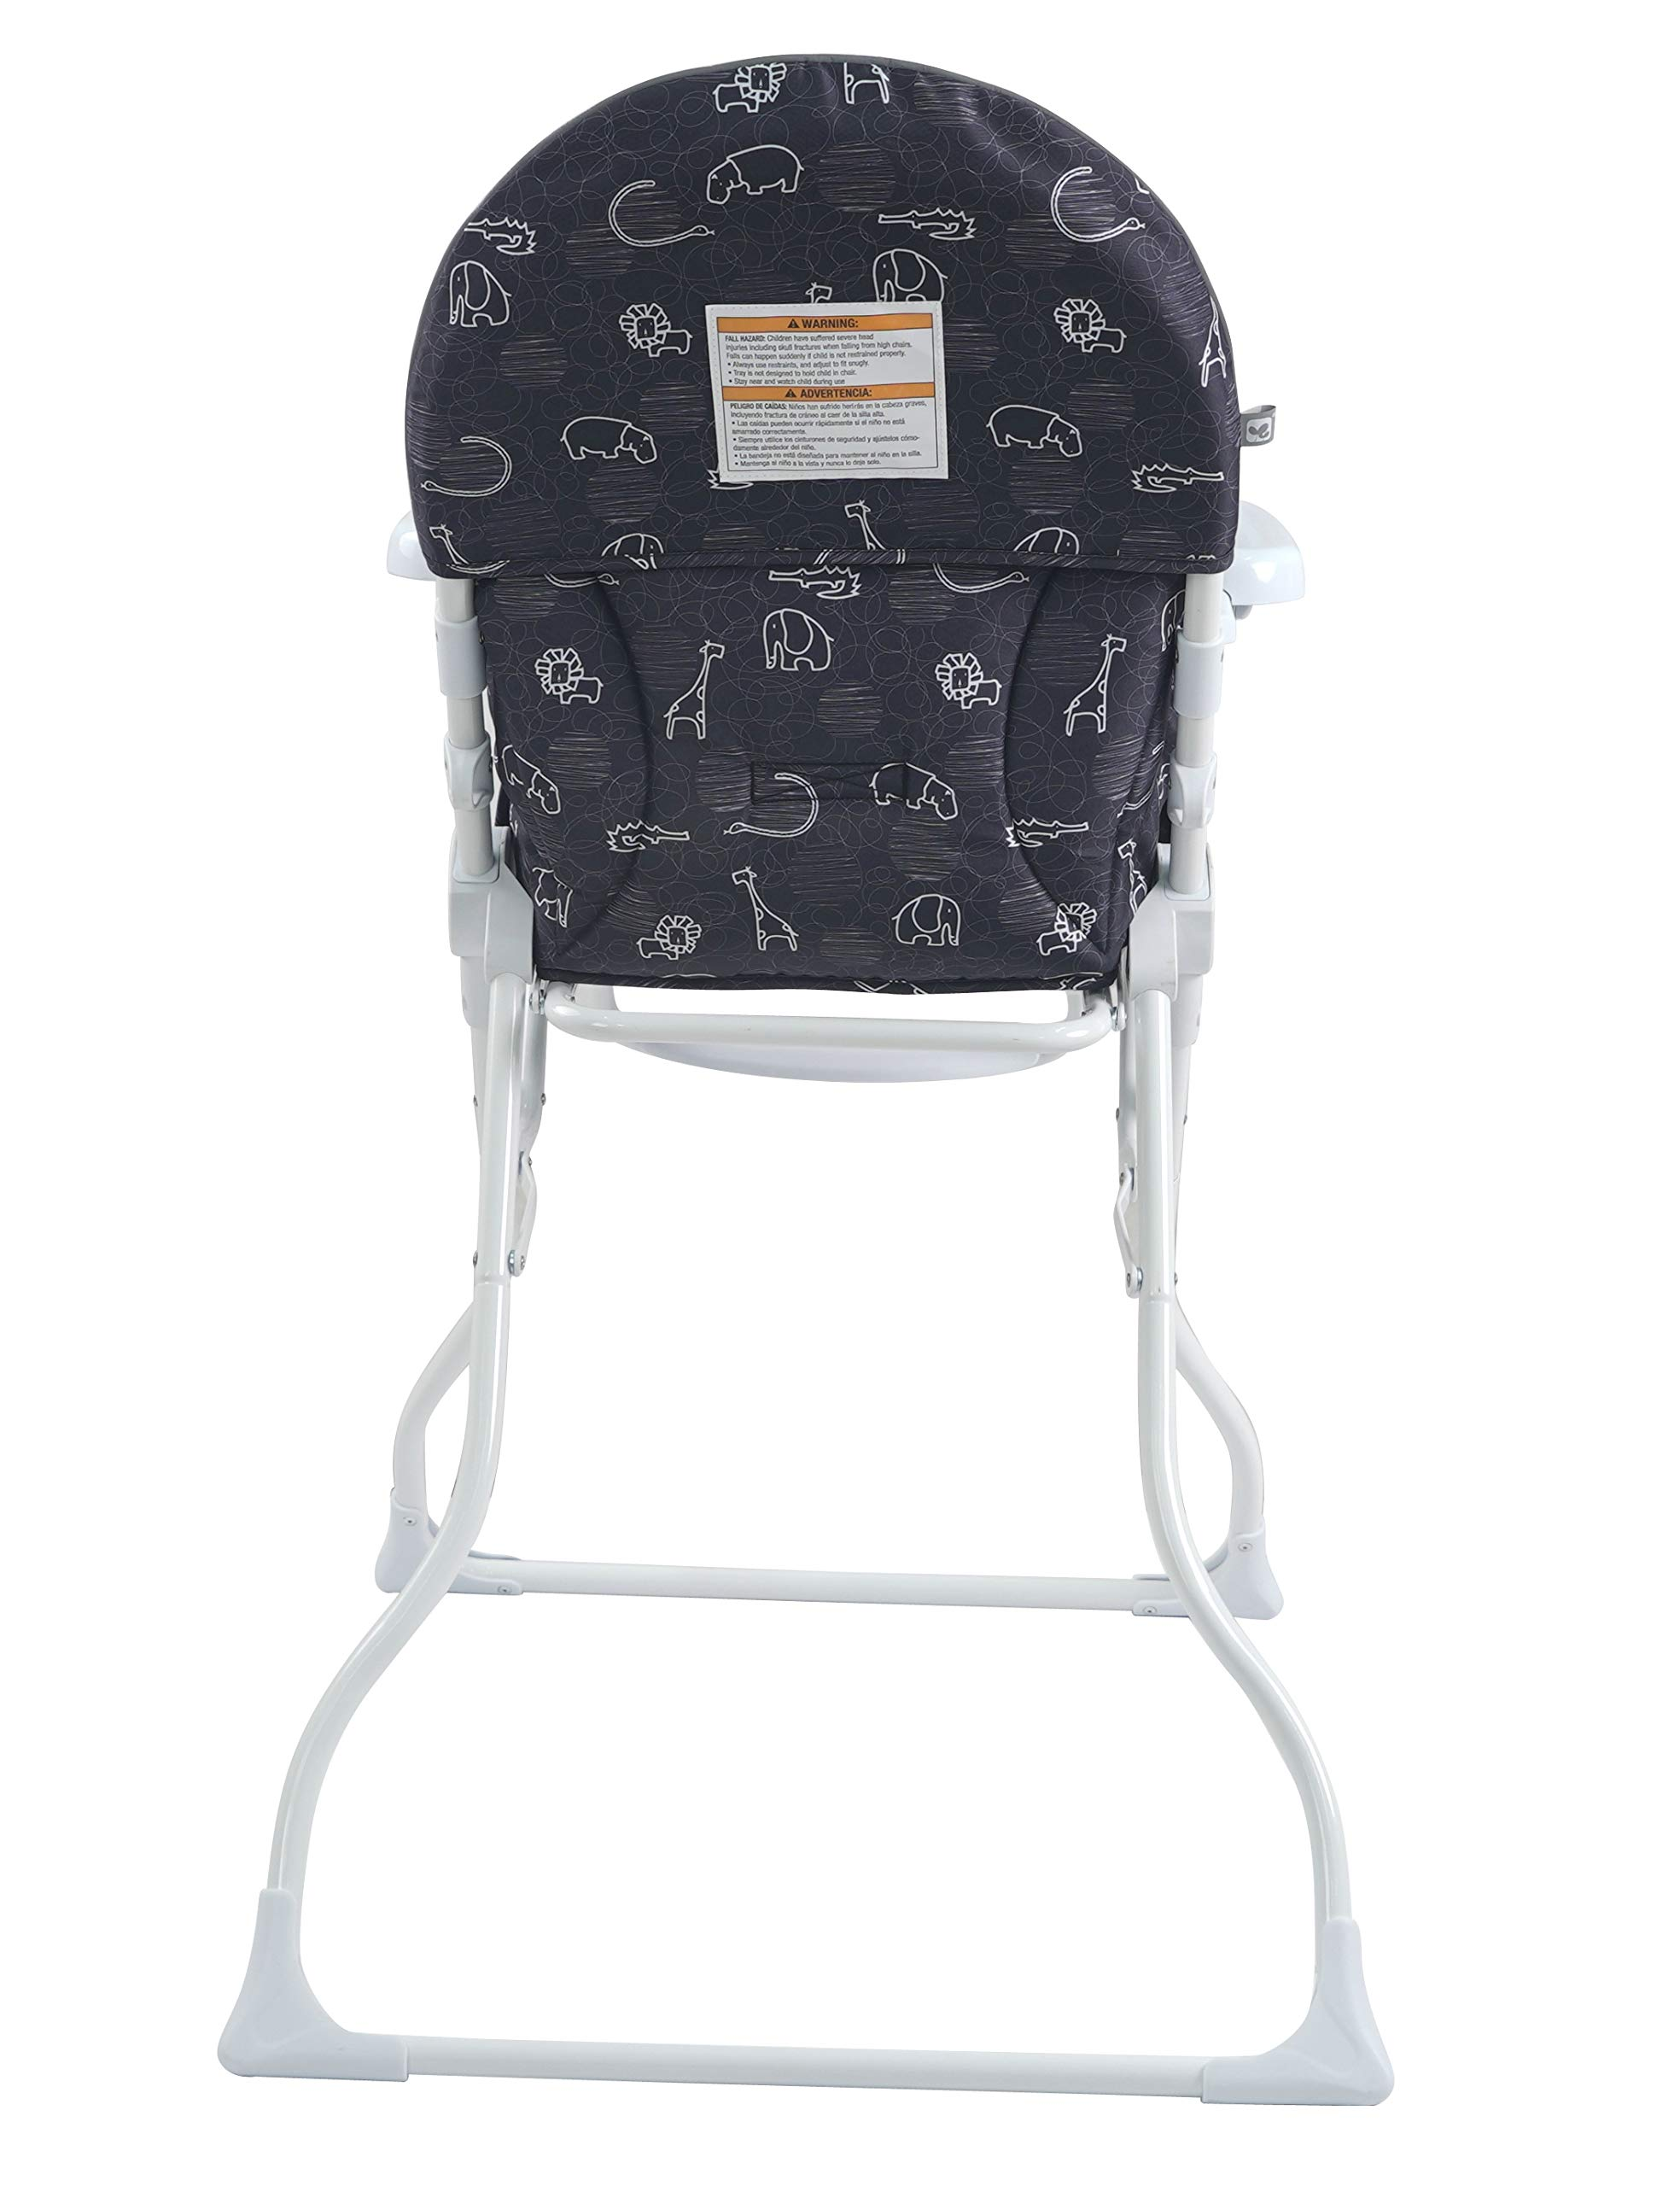 Pamo Babe Portable Fold High Chair (Black&White) by Pamo Babe